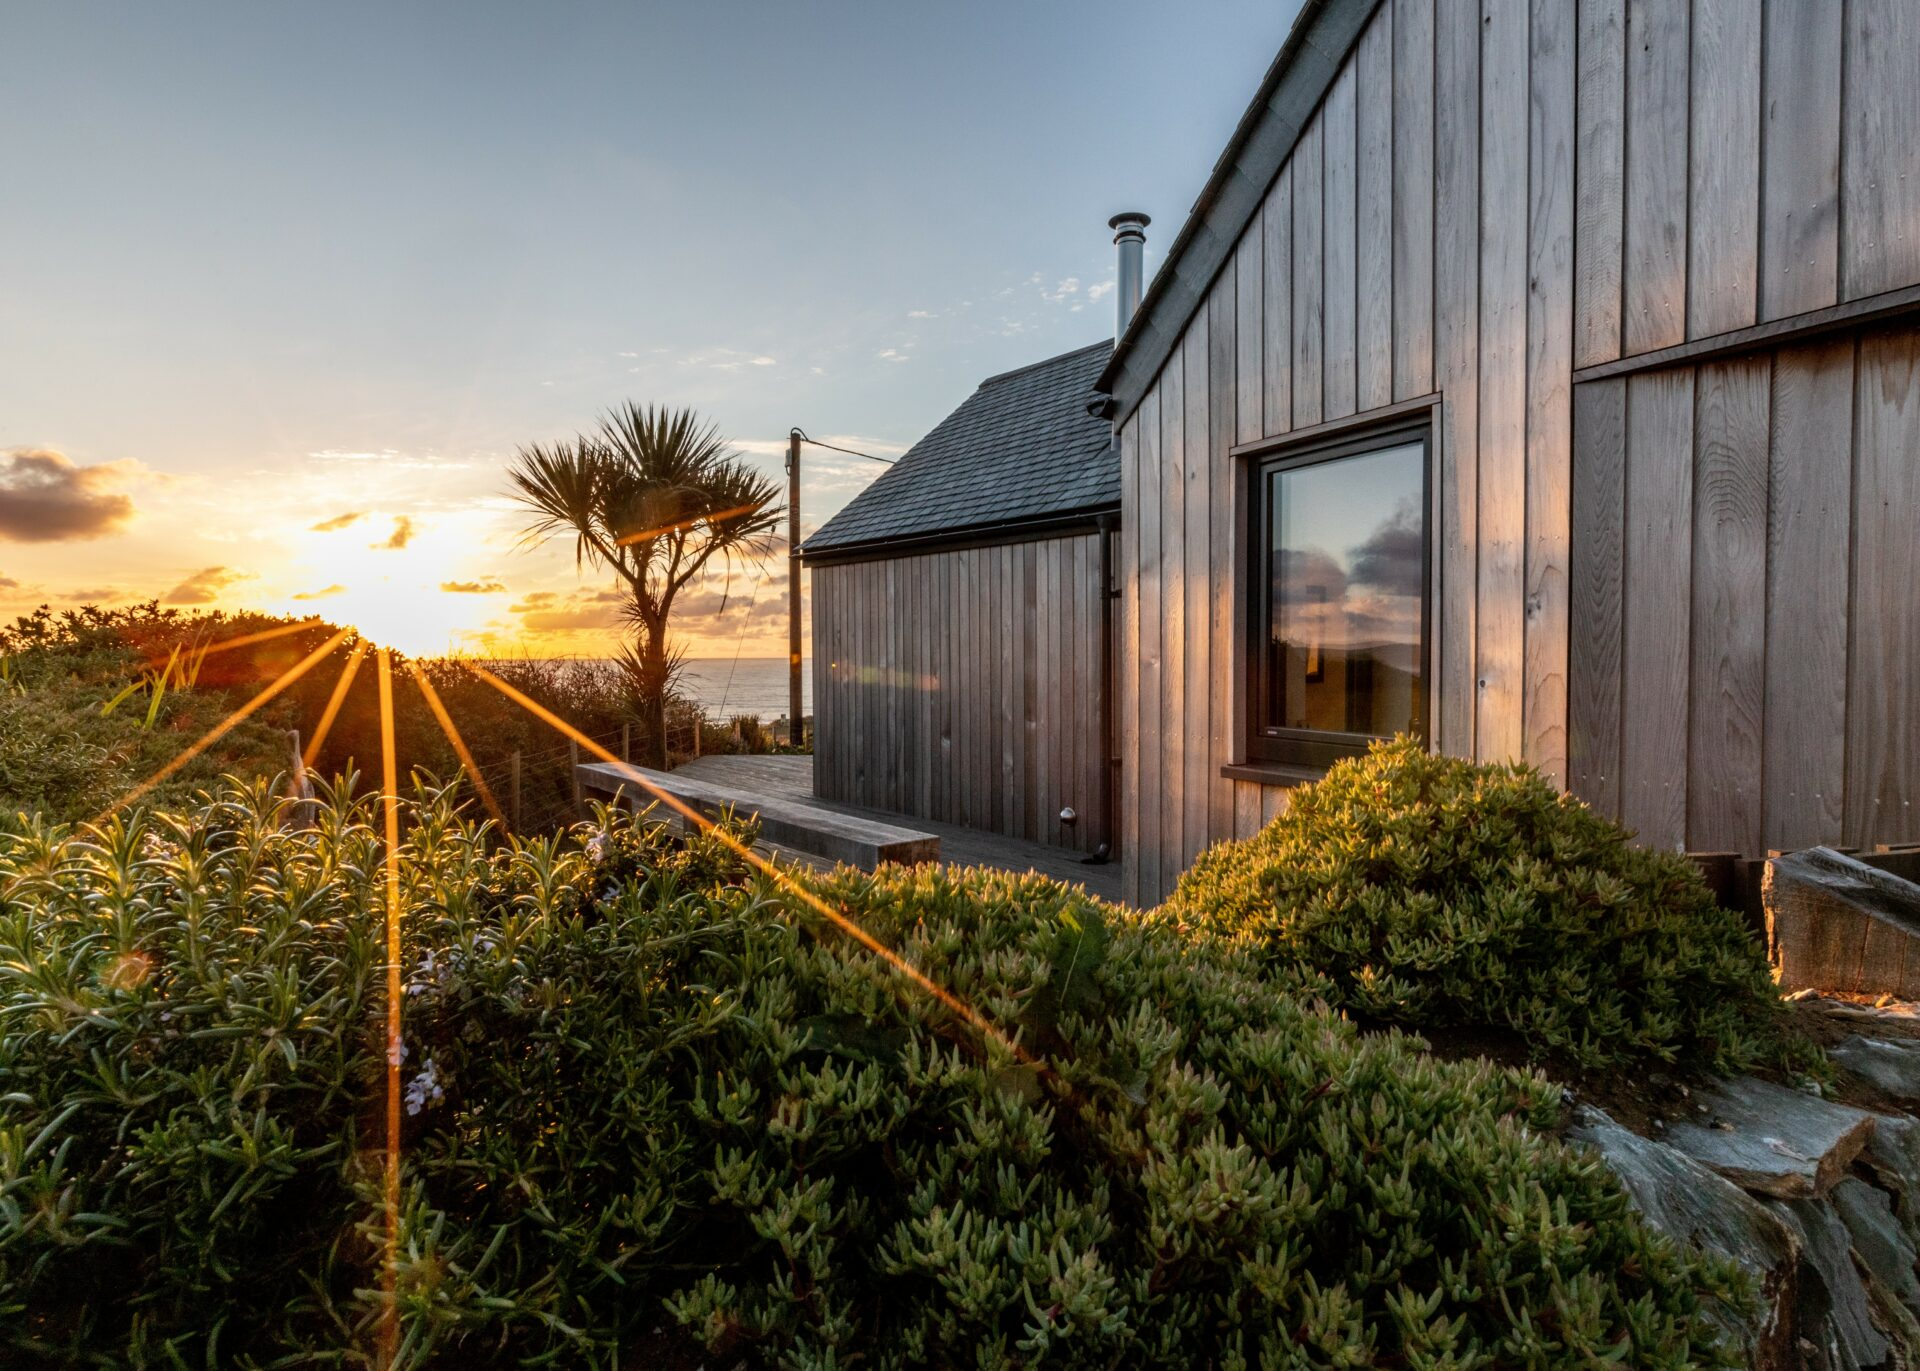 Stunning new build with sea views designed by Arco2 Architects Cornwall